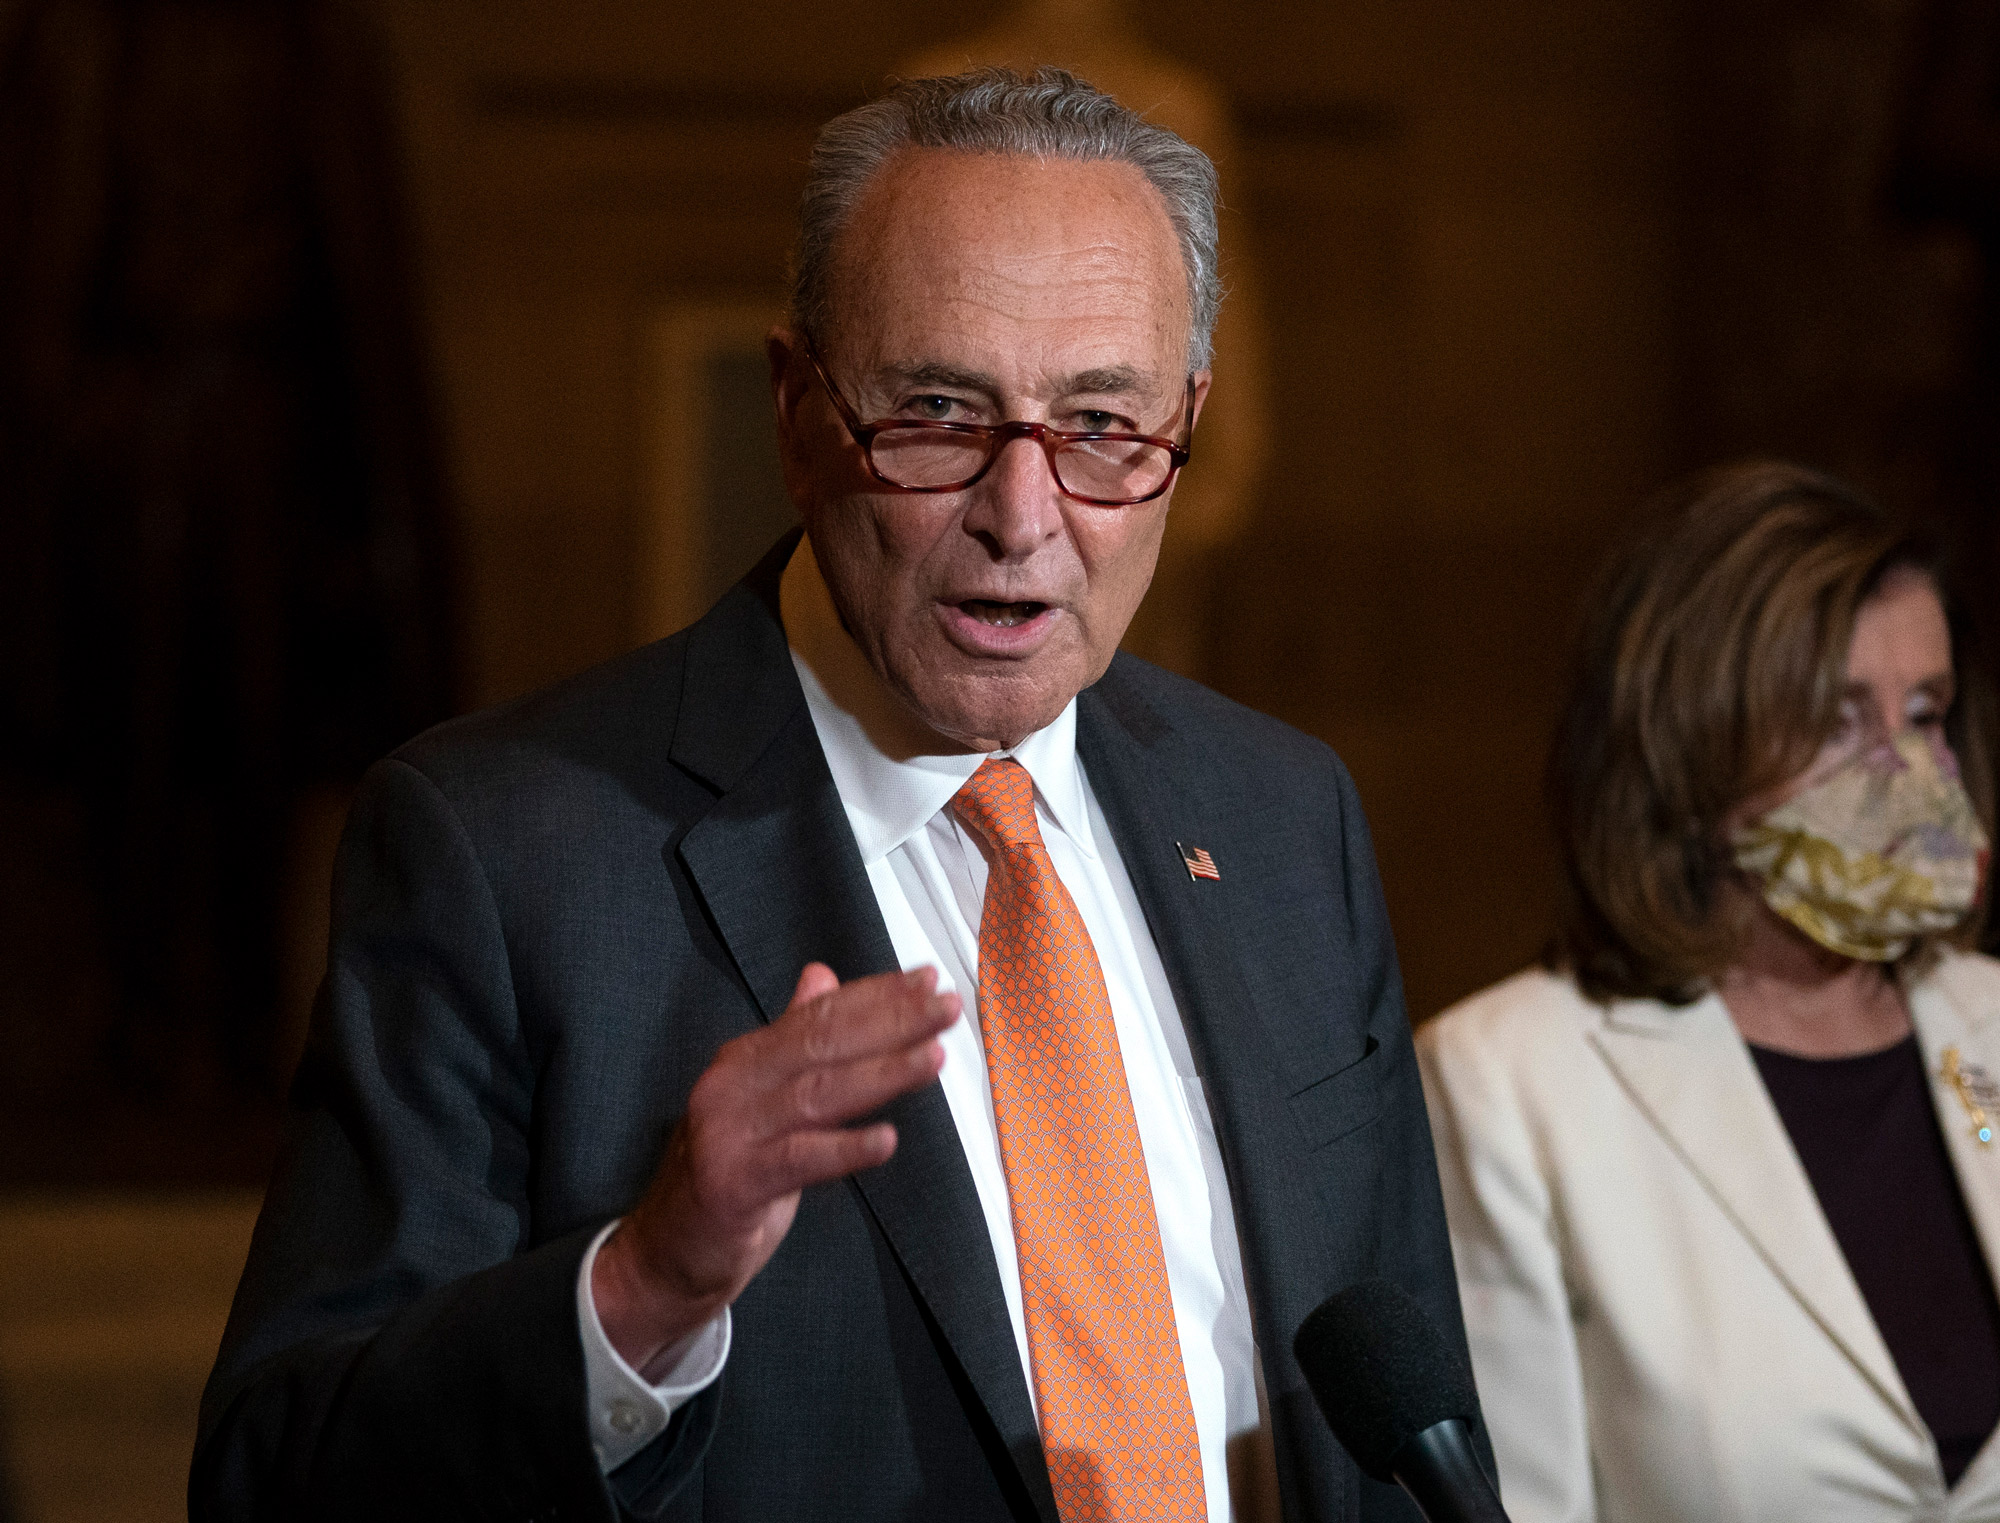 Senate Minority Leader Chuck Schumer speaks to reporters on Capitol Hill in Washington, DC, on August 6.